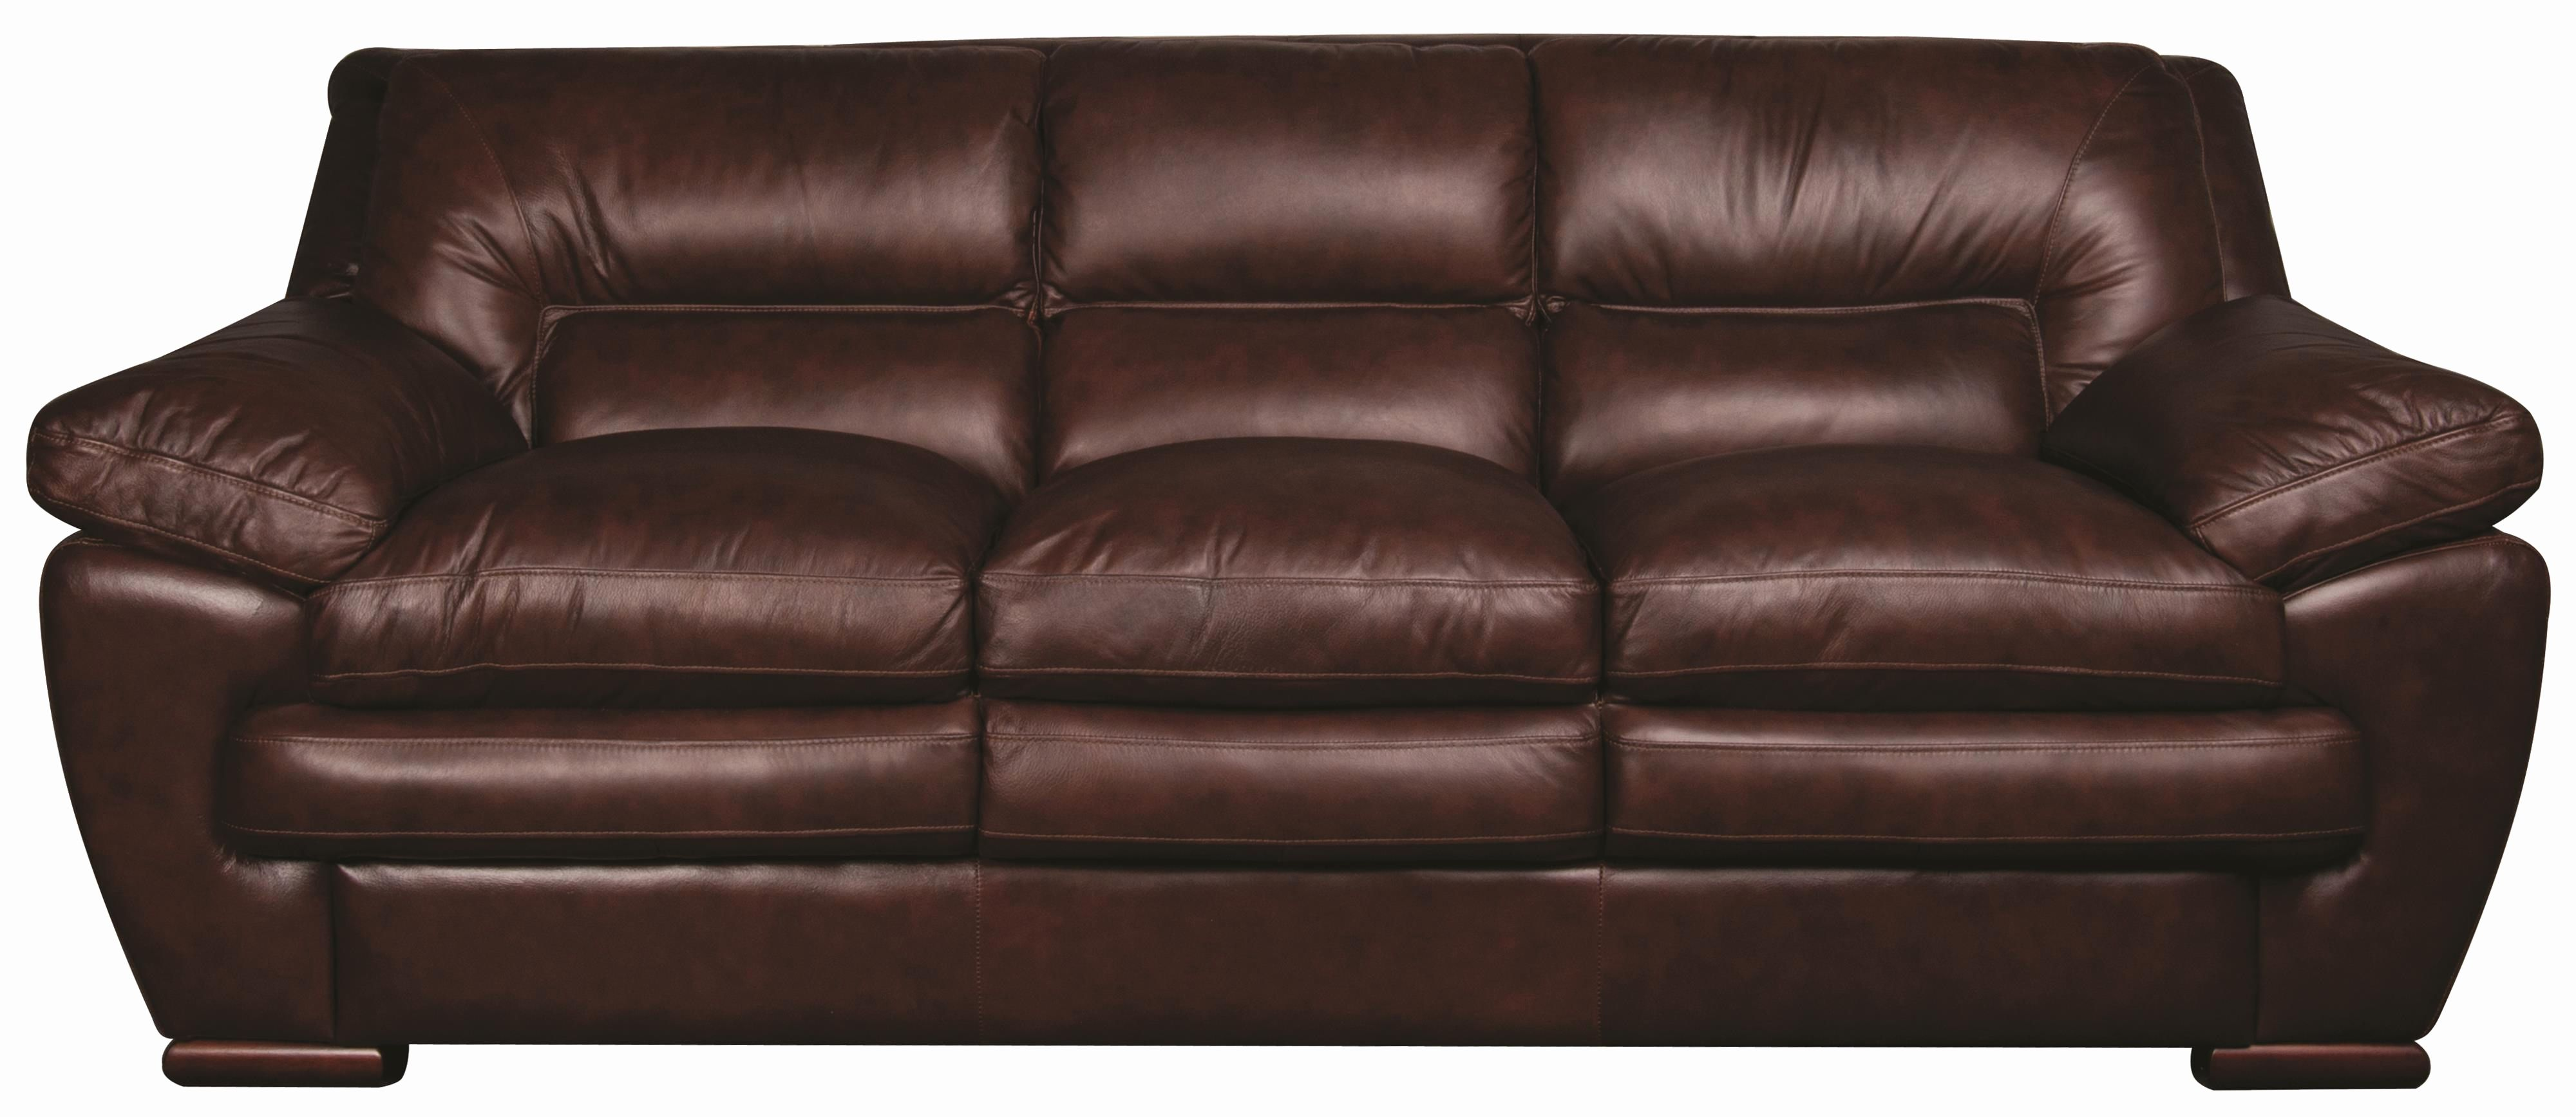 Pin by great sofas on Leather Sofa | Pinterest | Sofa, Home ...